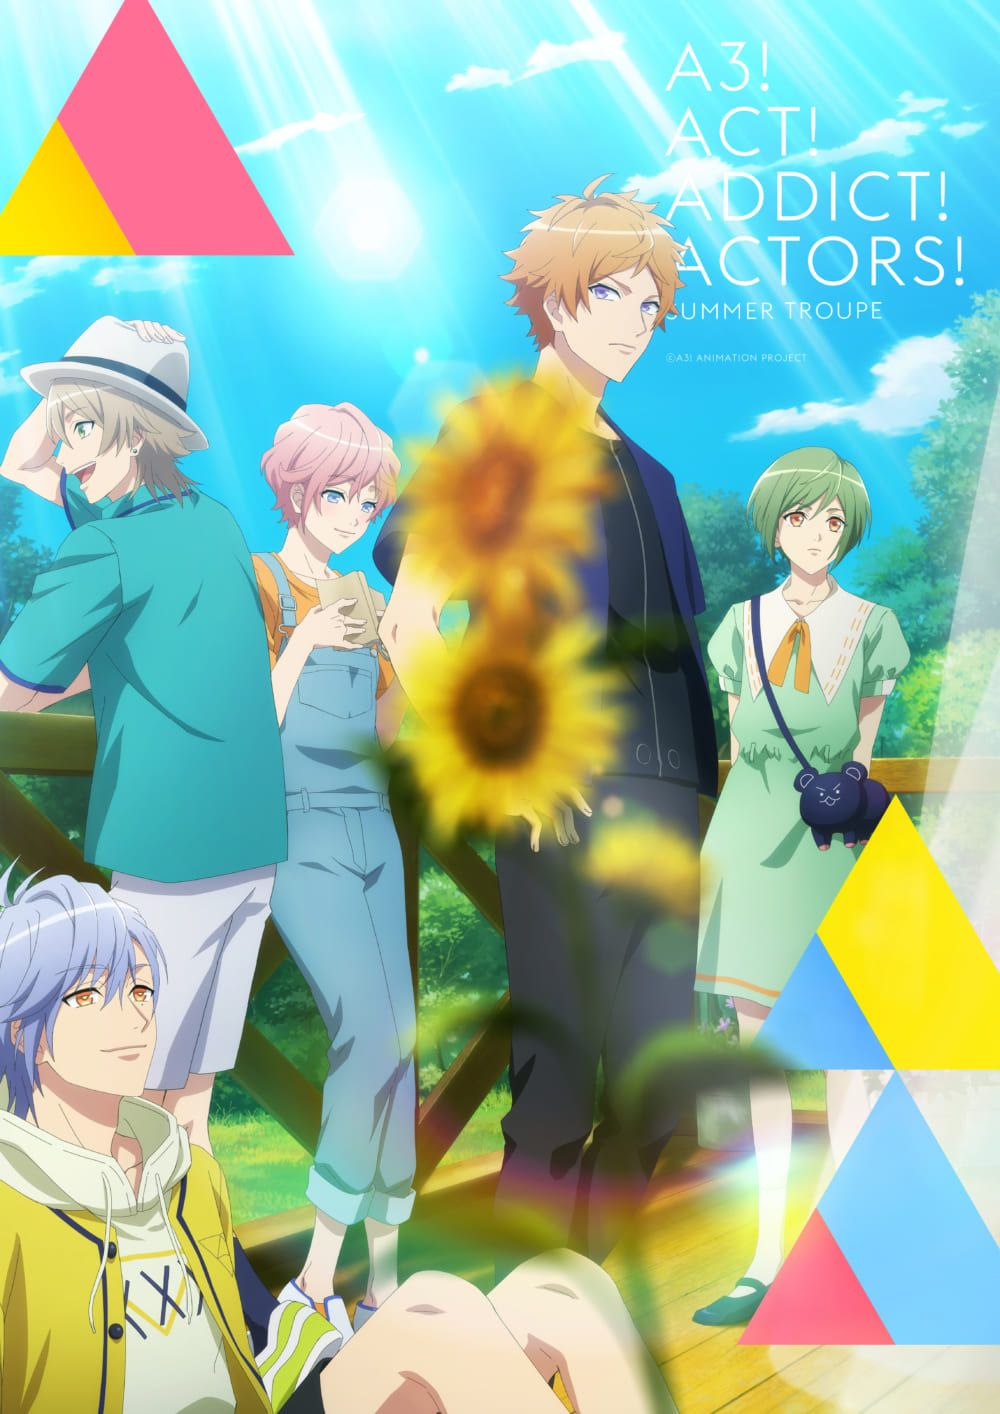 A3! Season Spring and Summer 01 in 2020 Anime, Anime